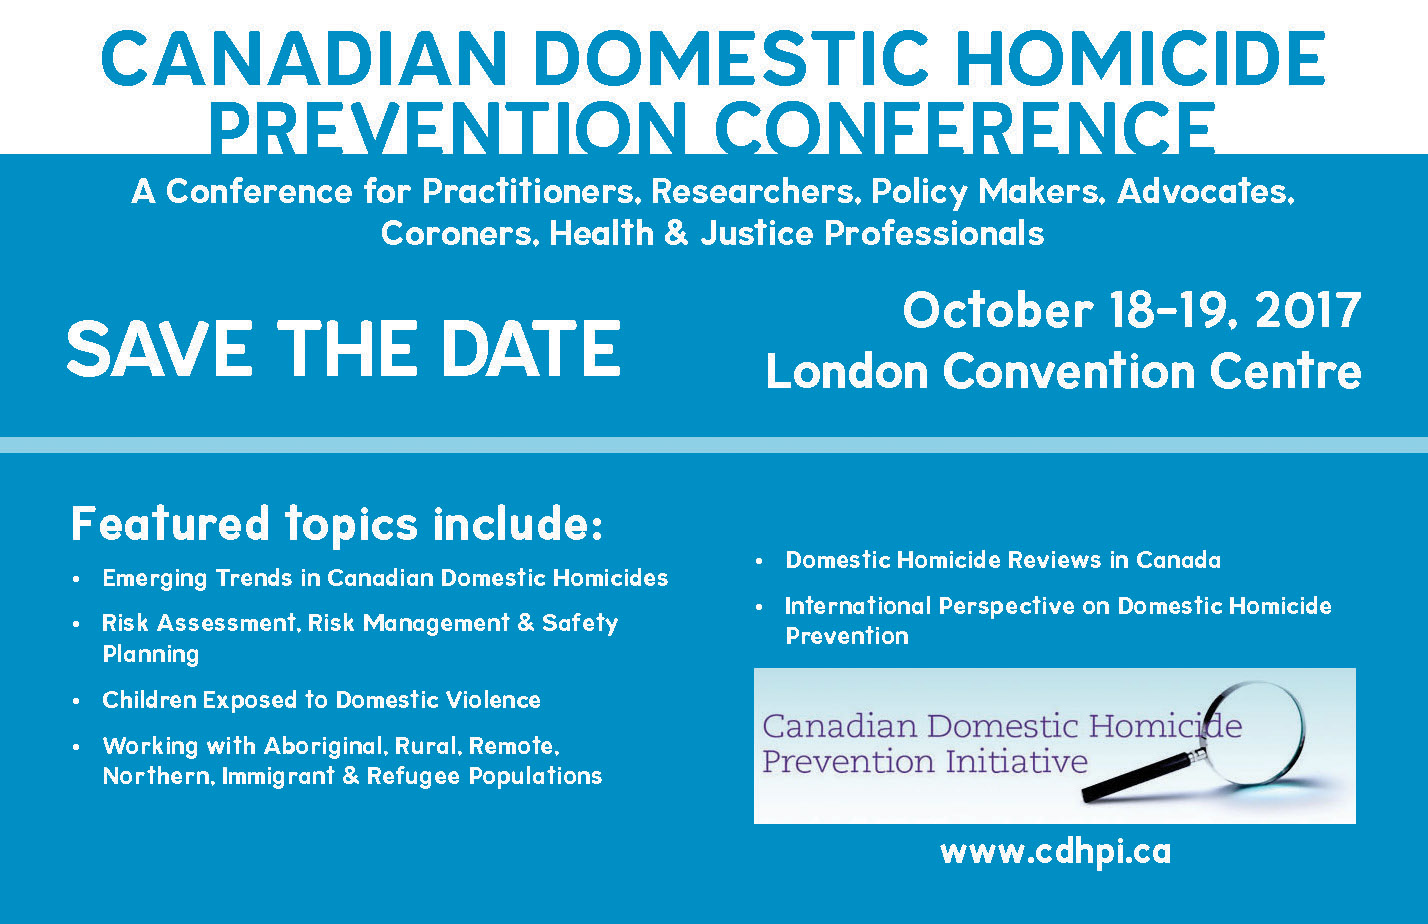 Canadian Domestic Homicide Prevention Conference Save the Date